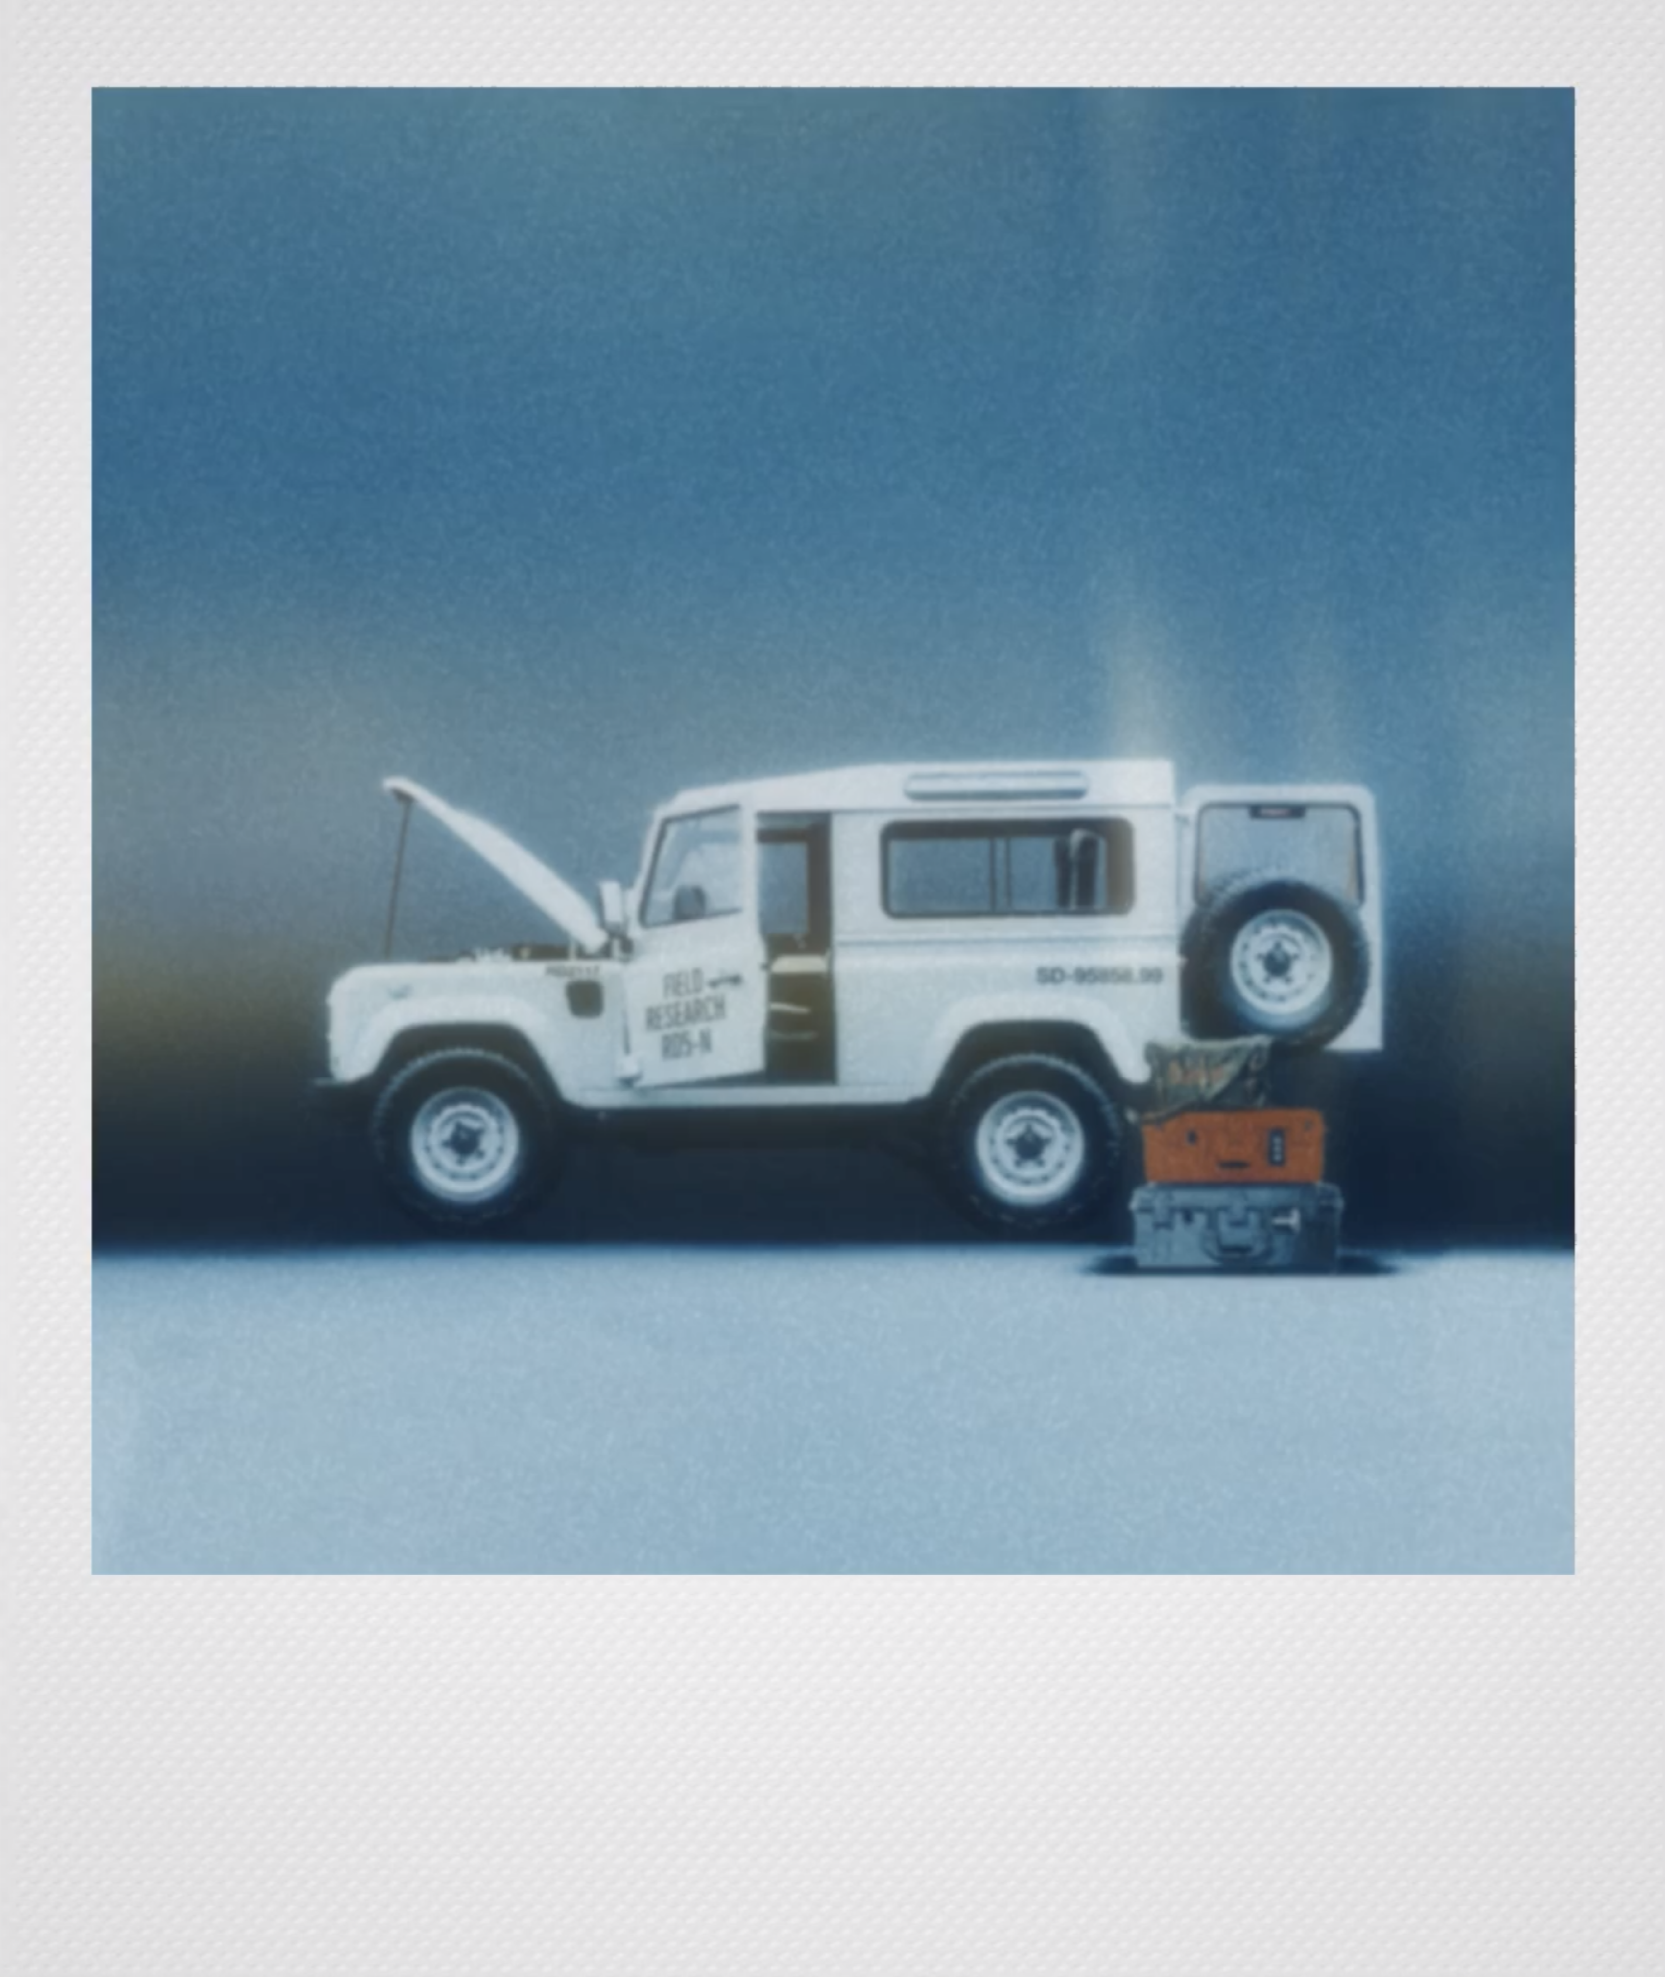 Photo of an SUV with Polaroid style effects designed by Casey Warren with RTRO Camera's Analog Effects Engine